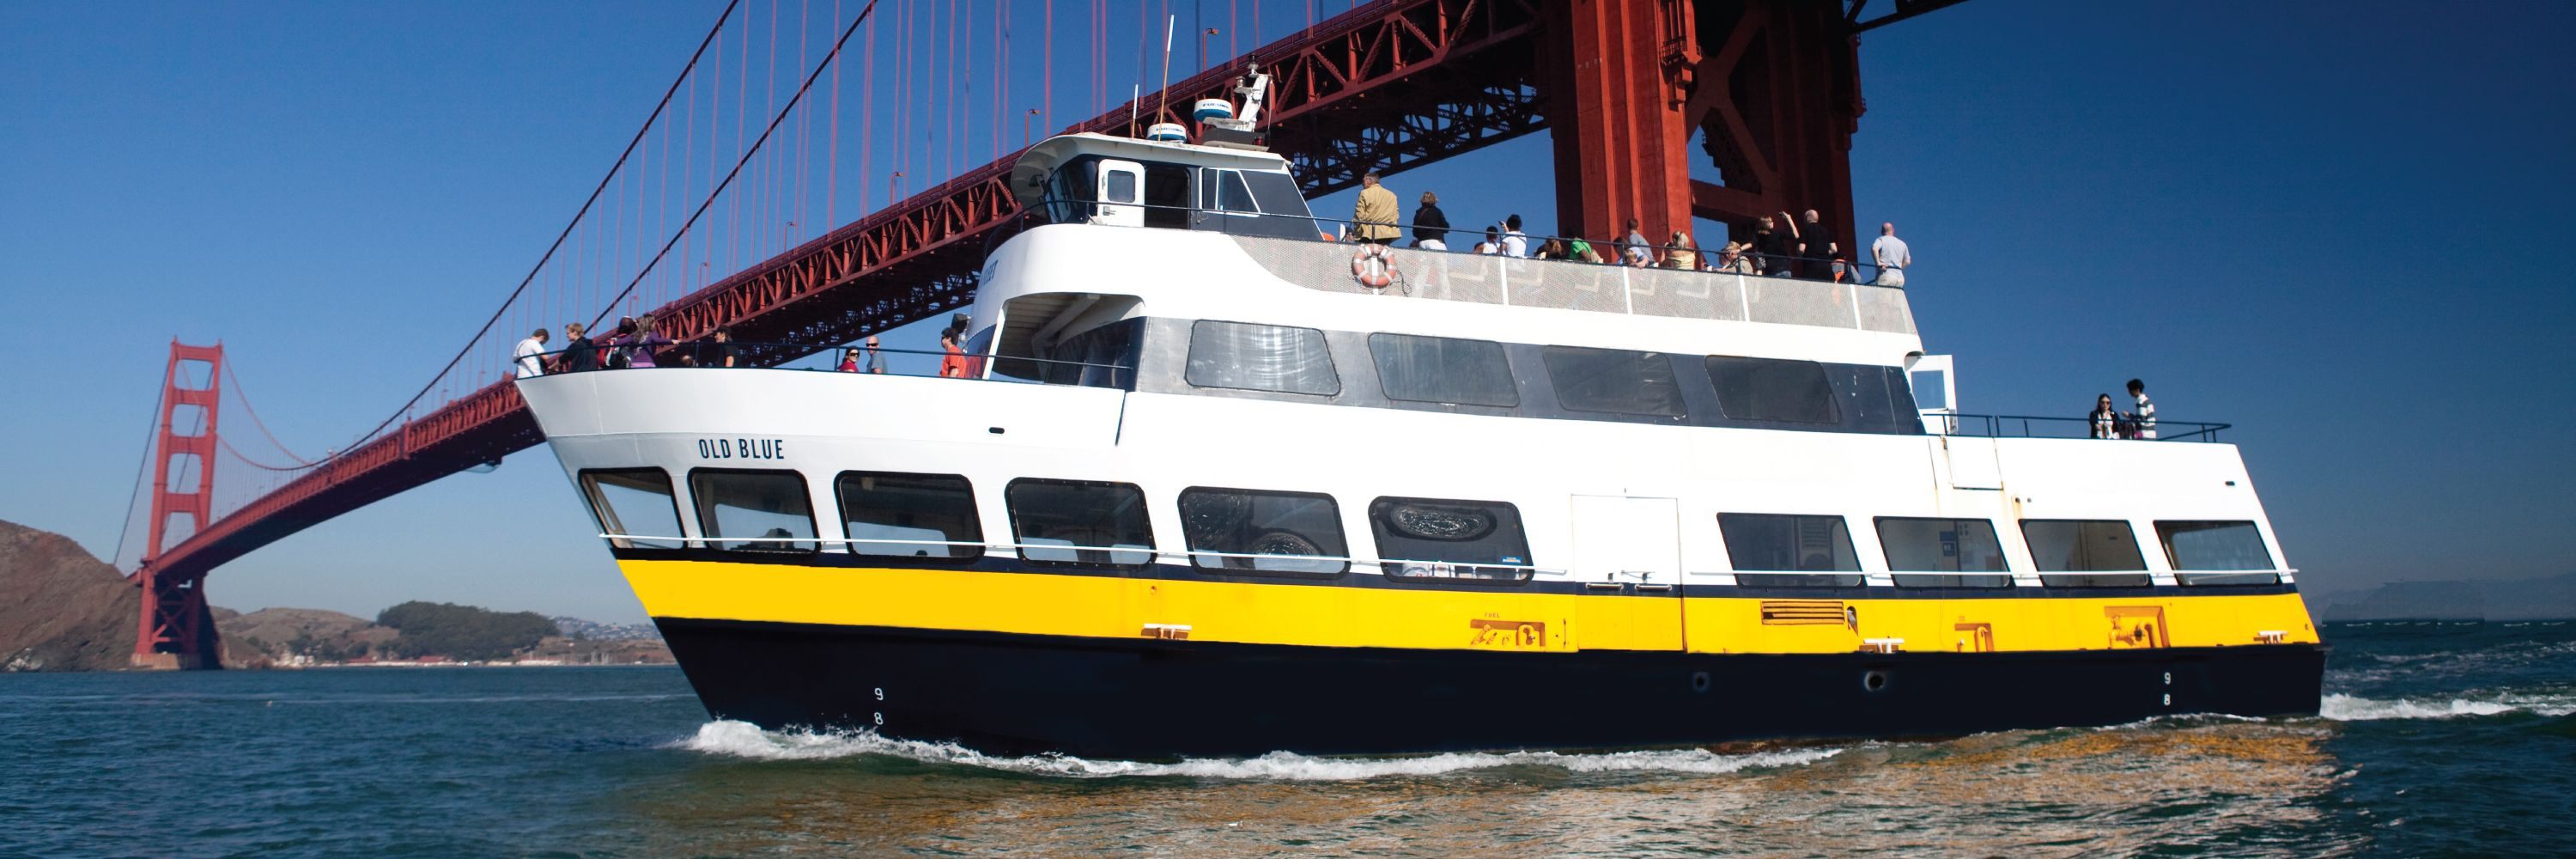 San Francisco Boat Tours 1 Hour Bay Cruise